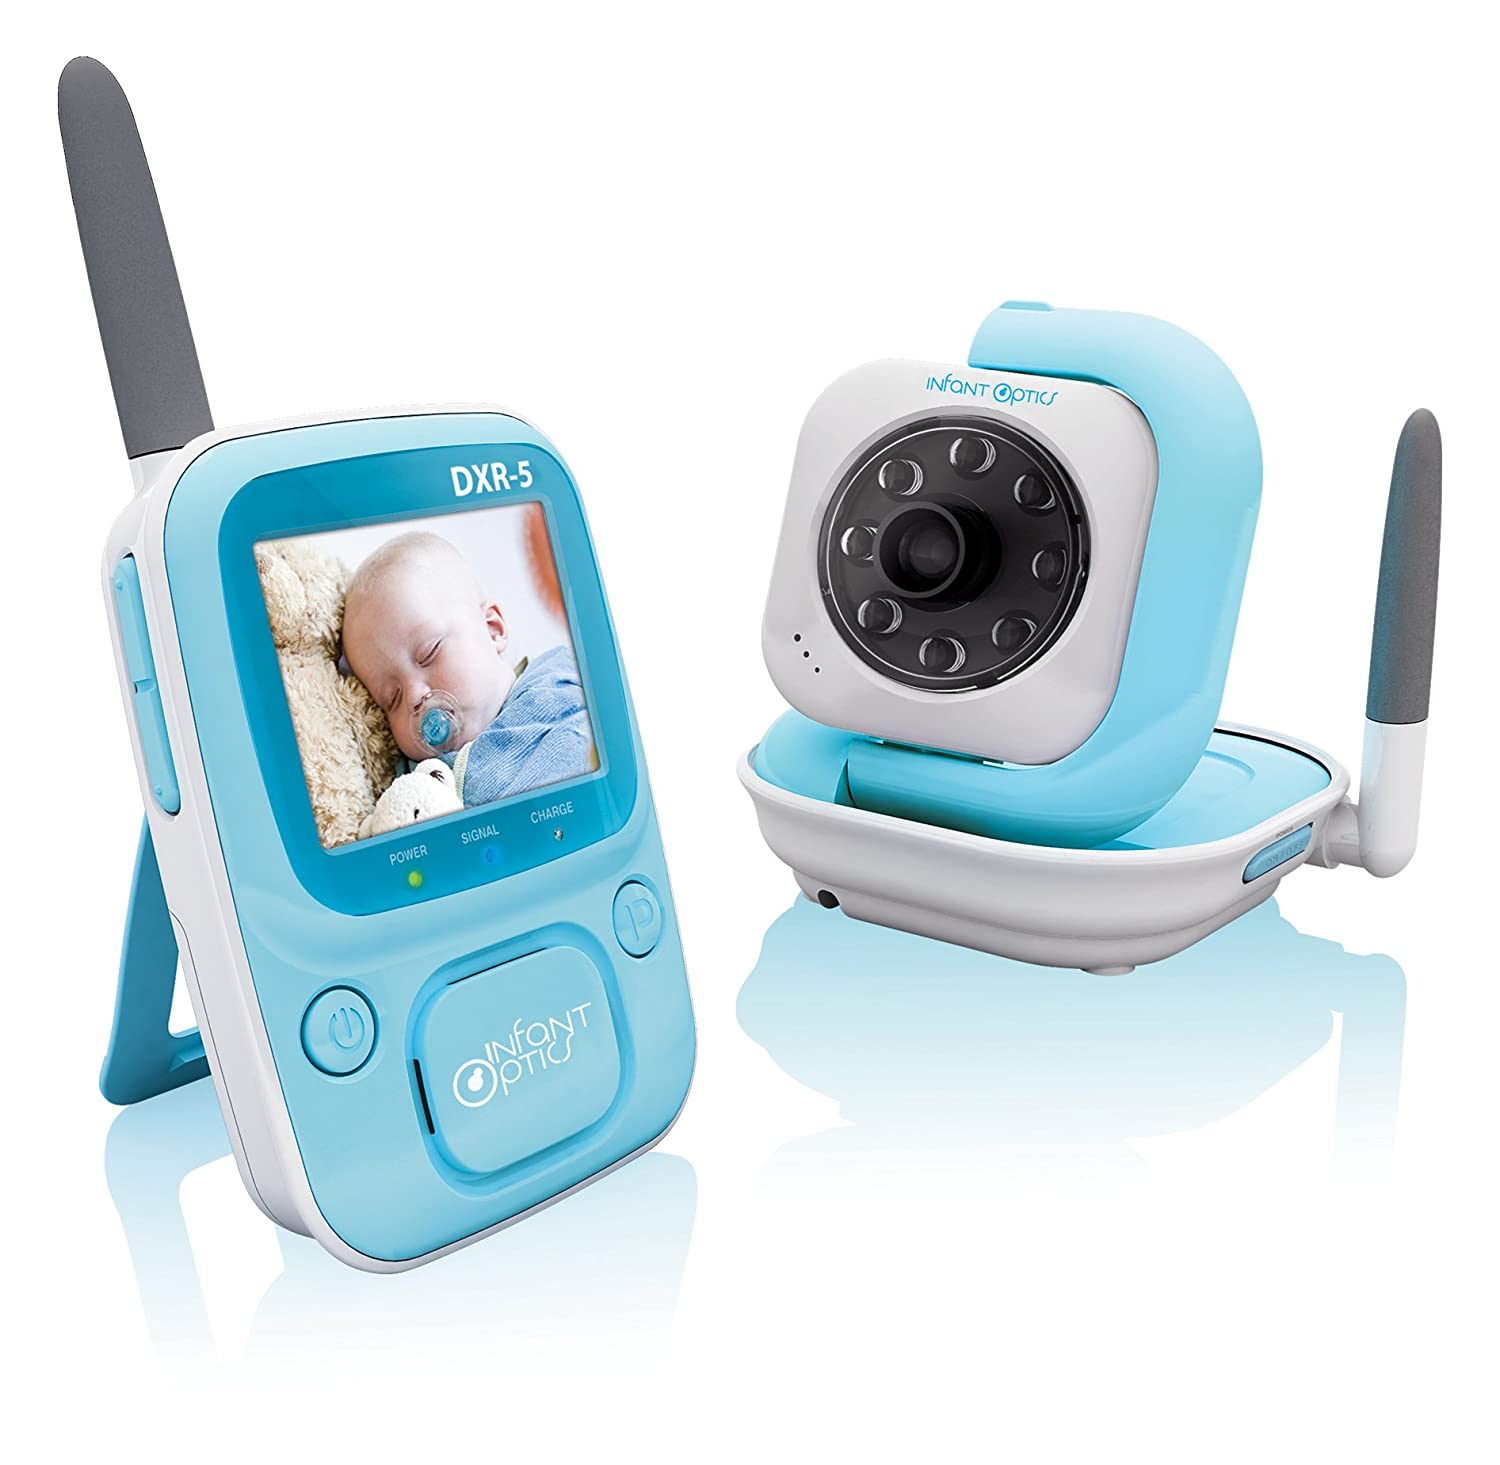 best infant optics baby monitor